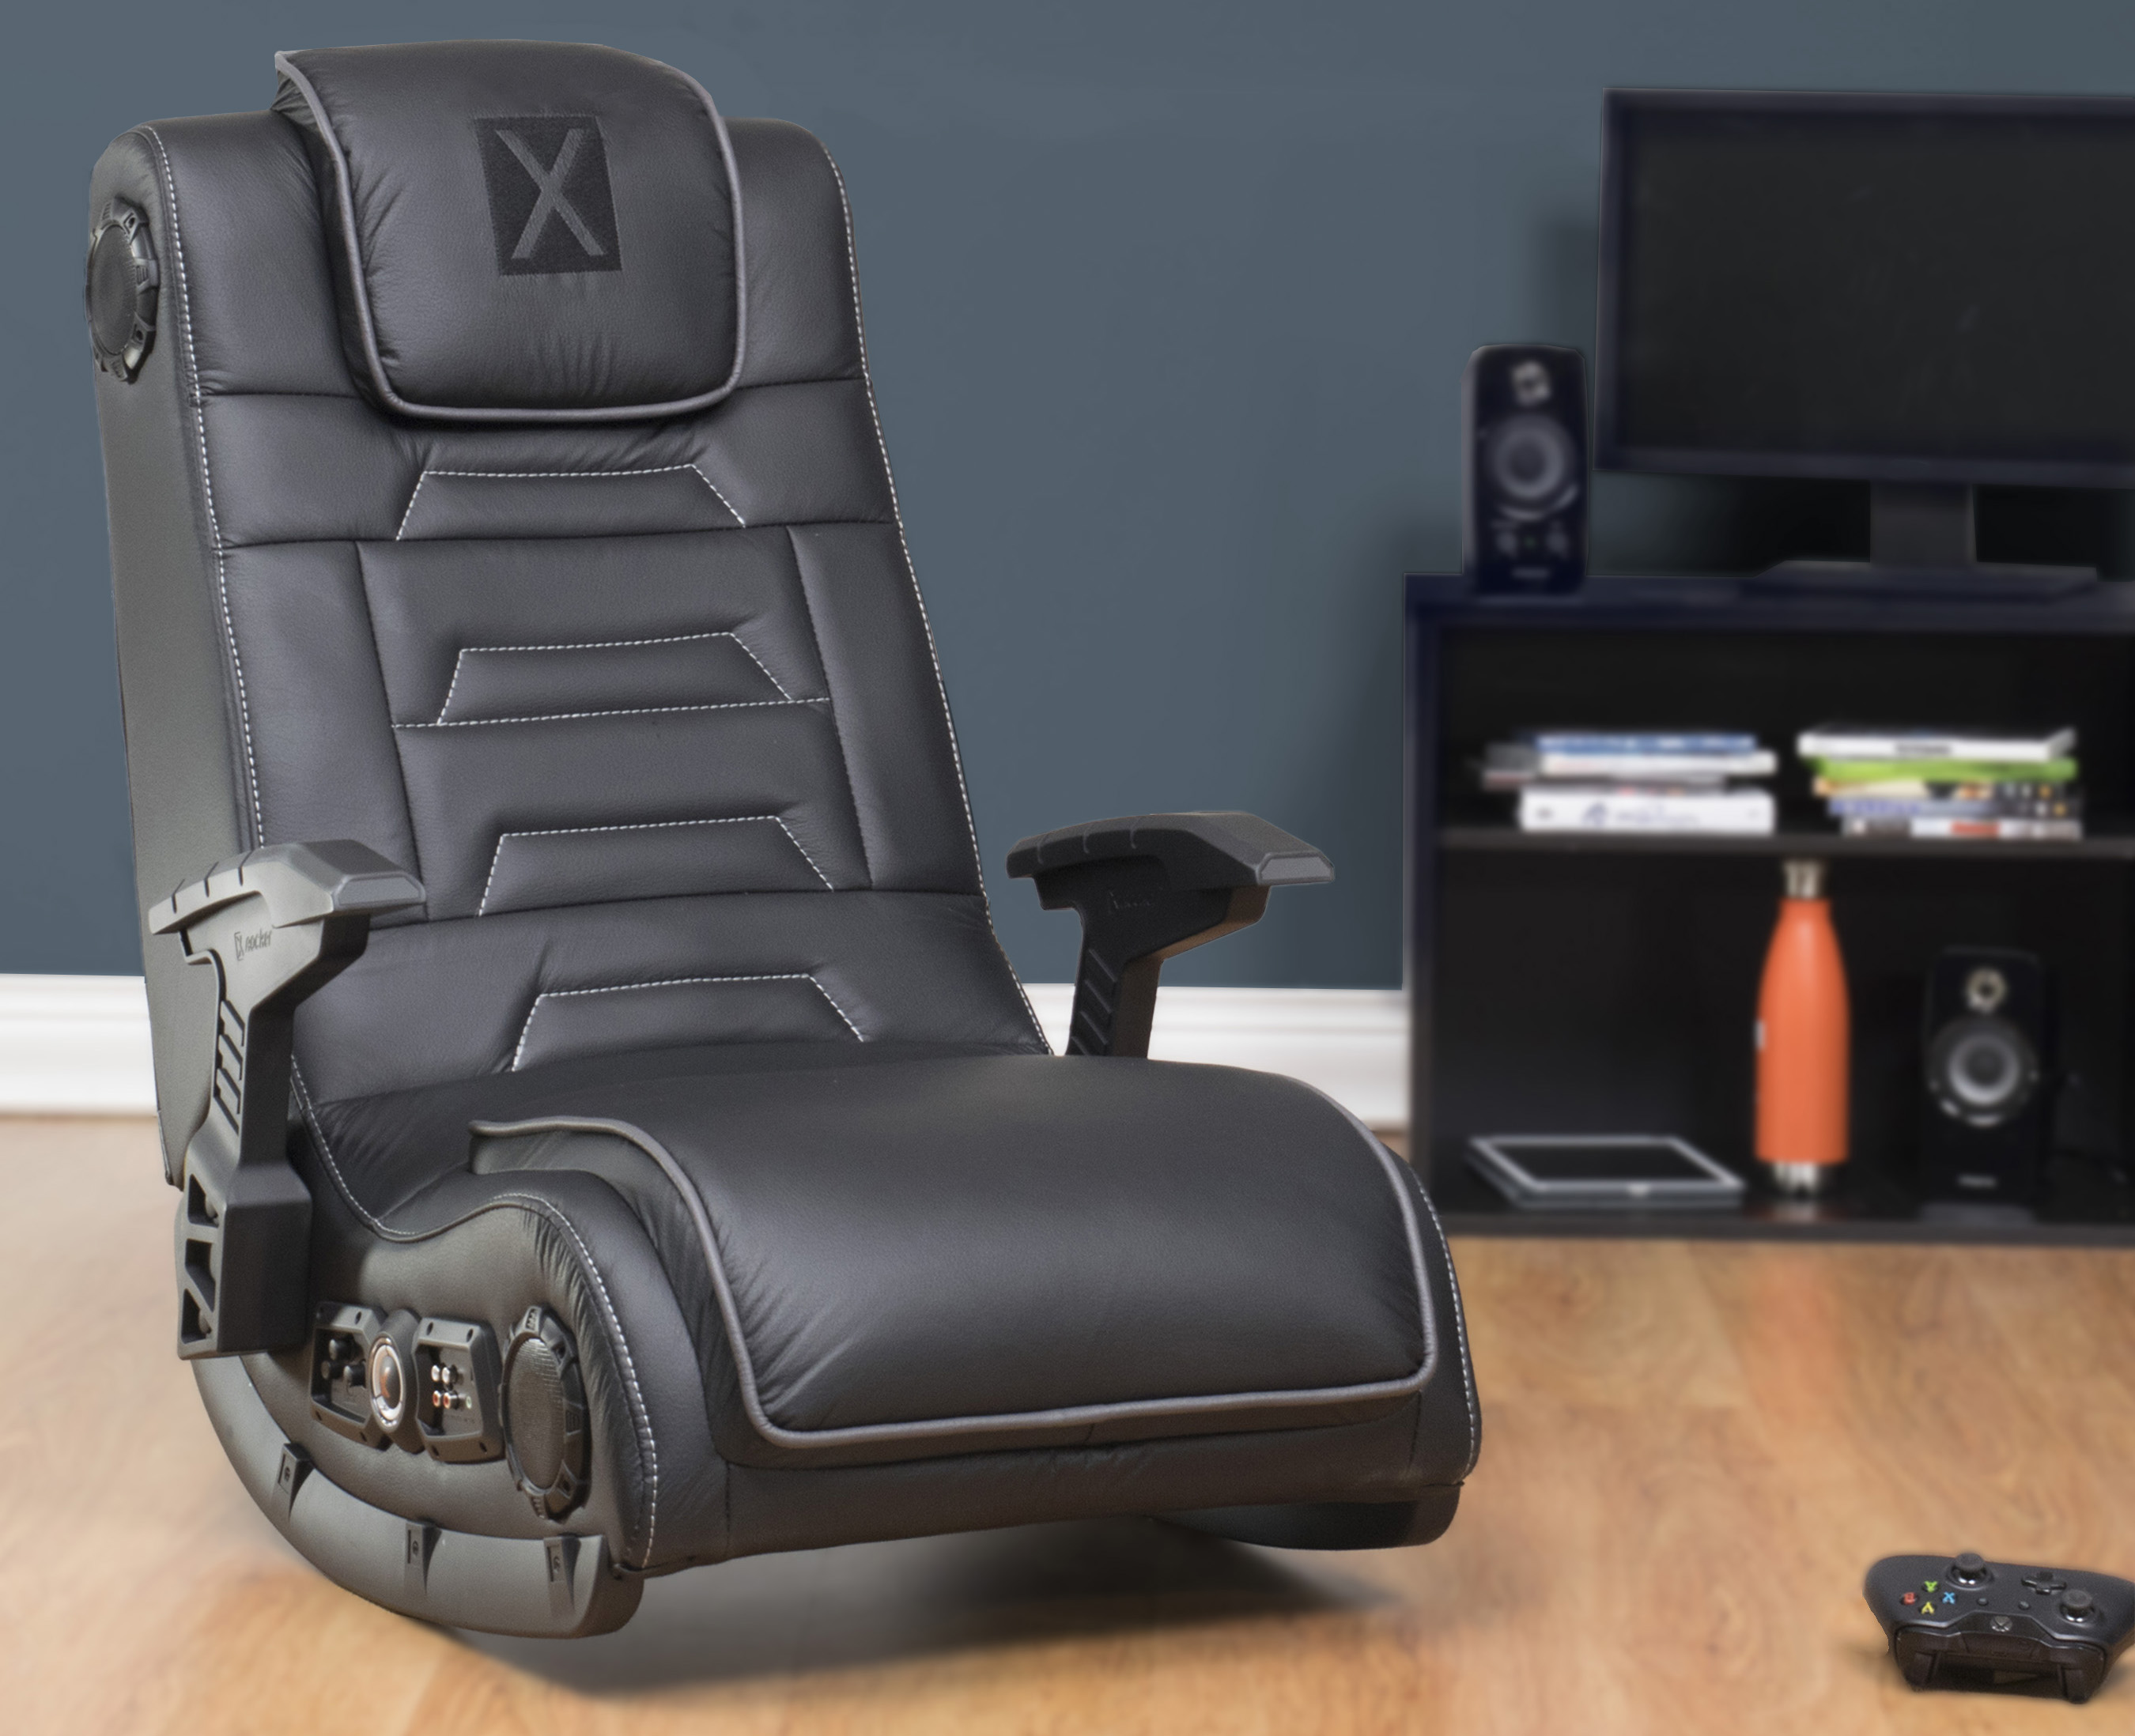 series chair x wireless black com video pro walmart ip gaming rocker audio